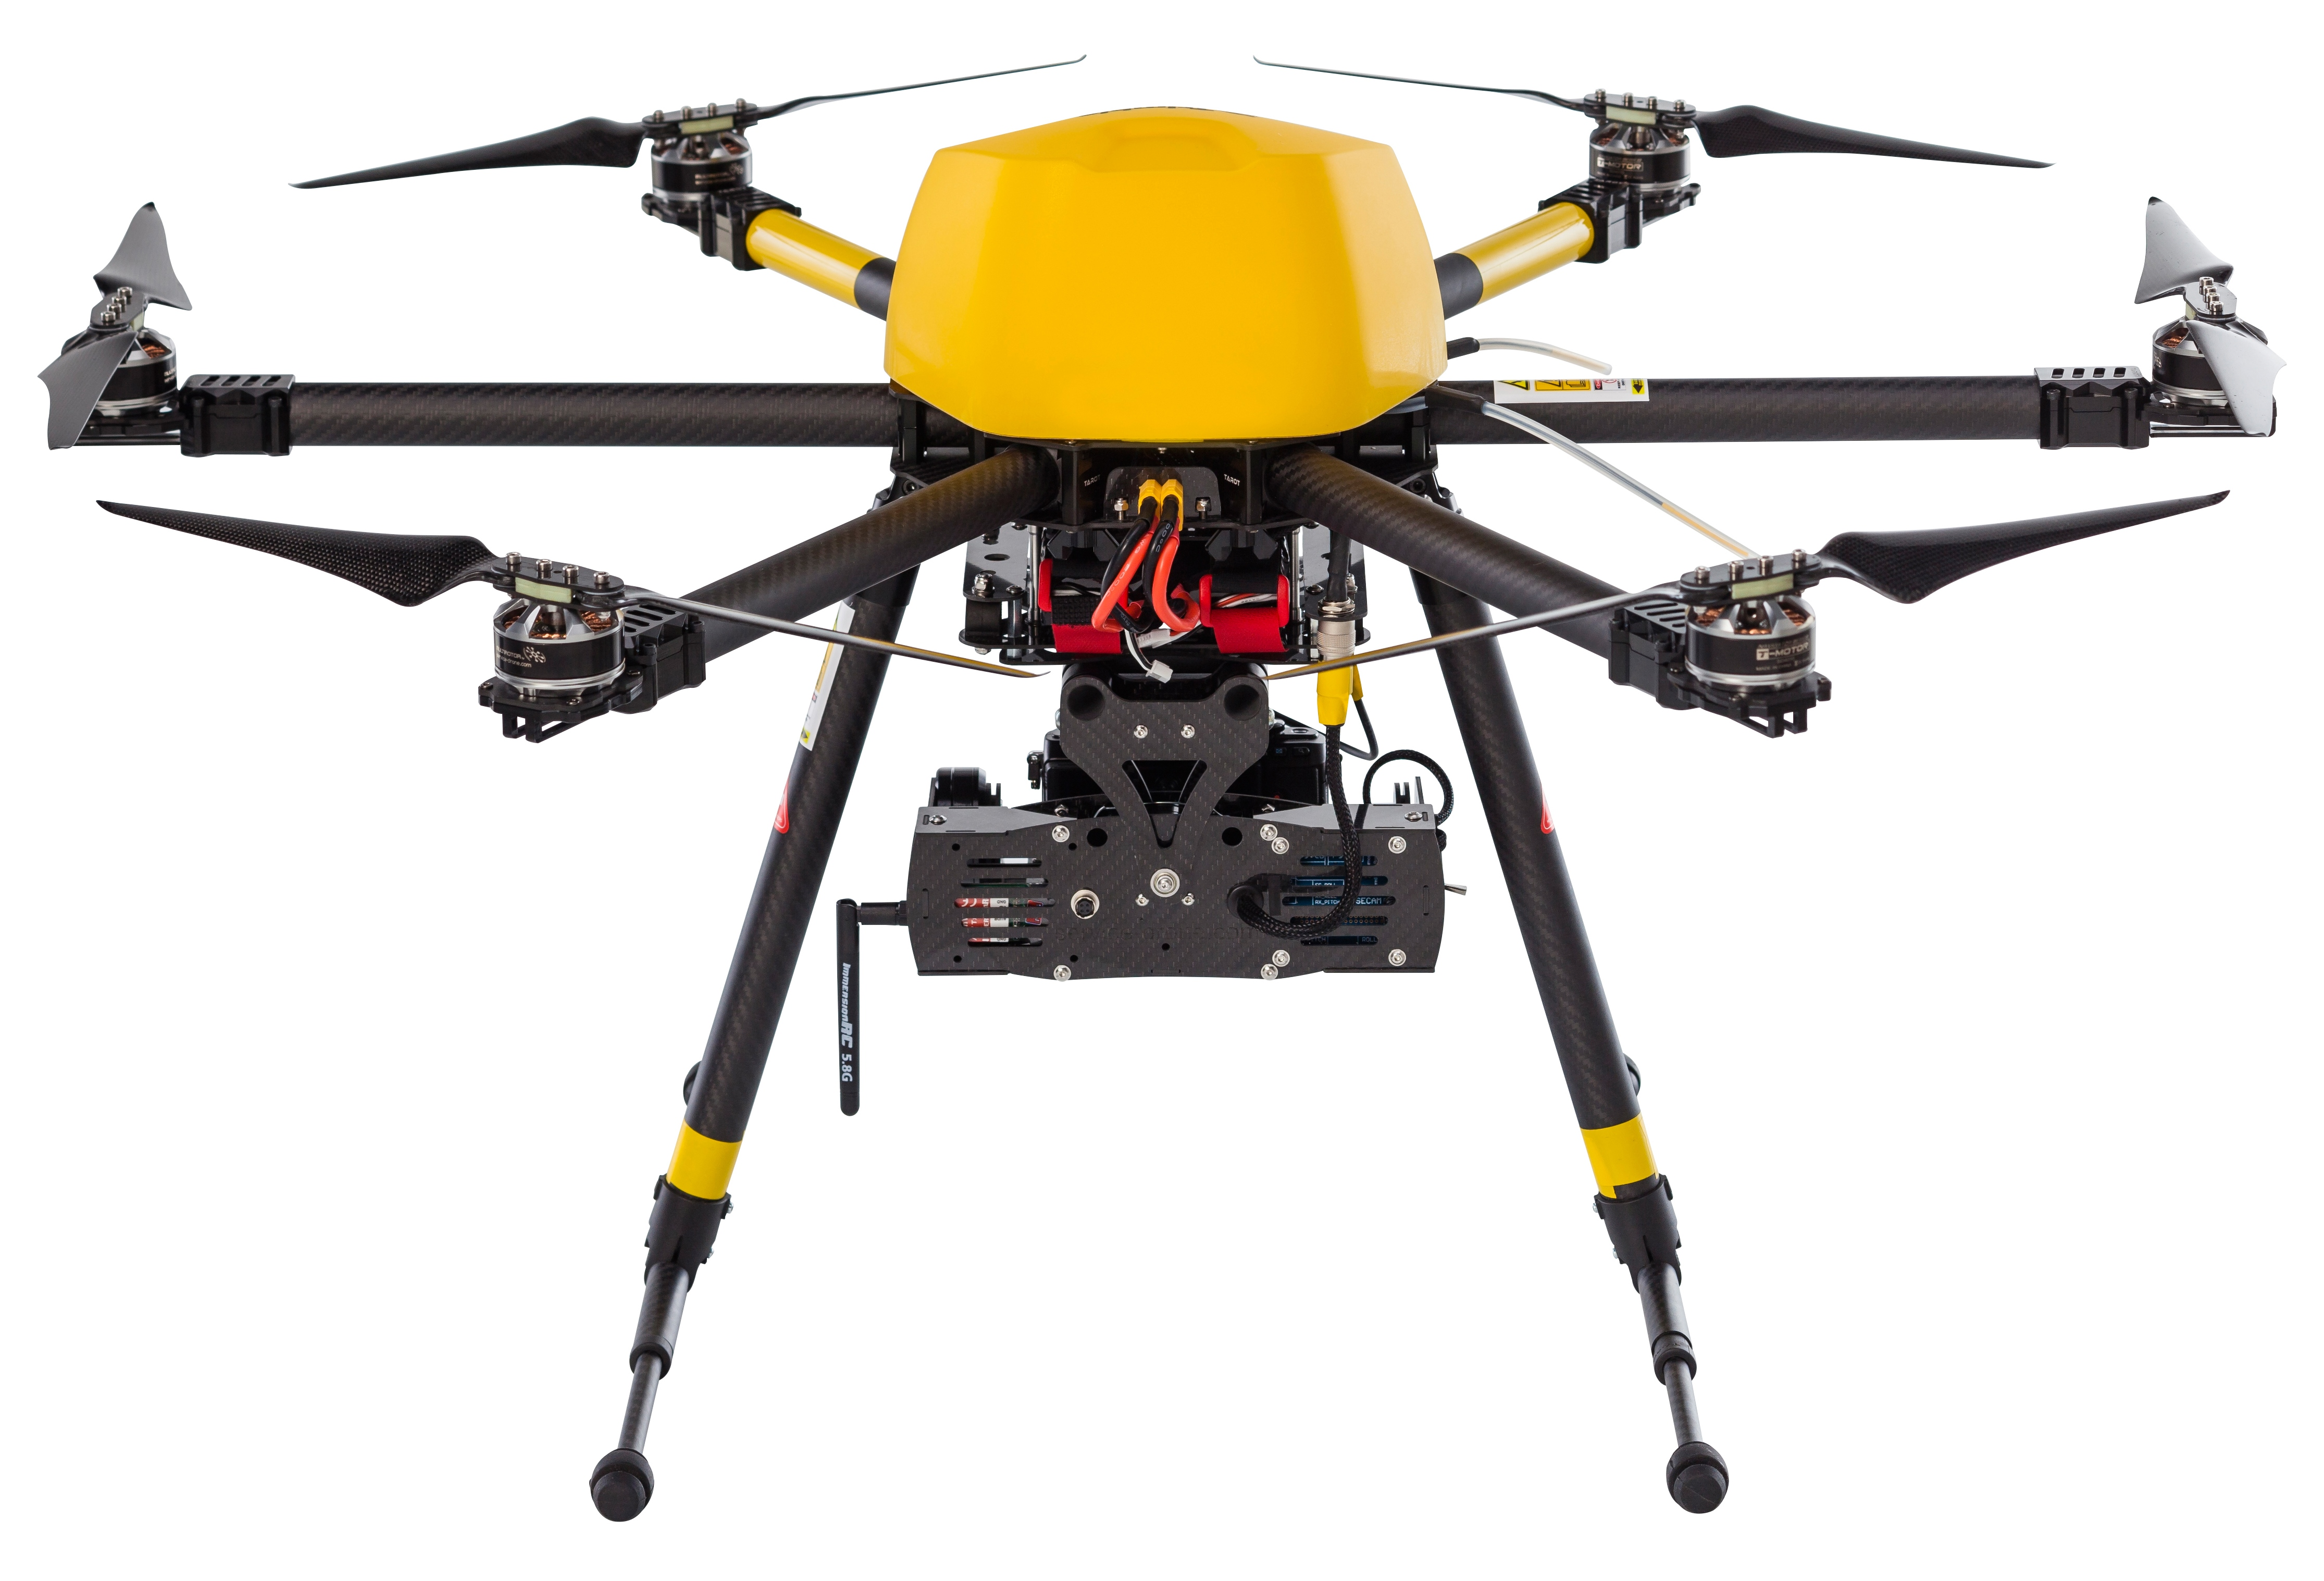 Trimble ZX5 Multirotor Unmanned Aircraft System - Trimble Products from Trimble Navigation, USA - Tr